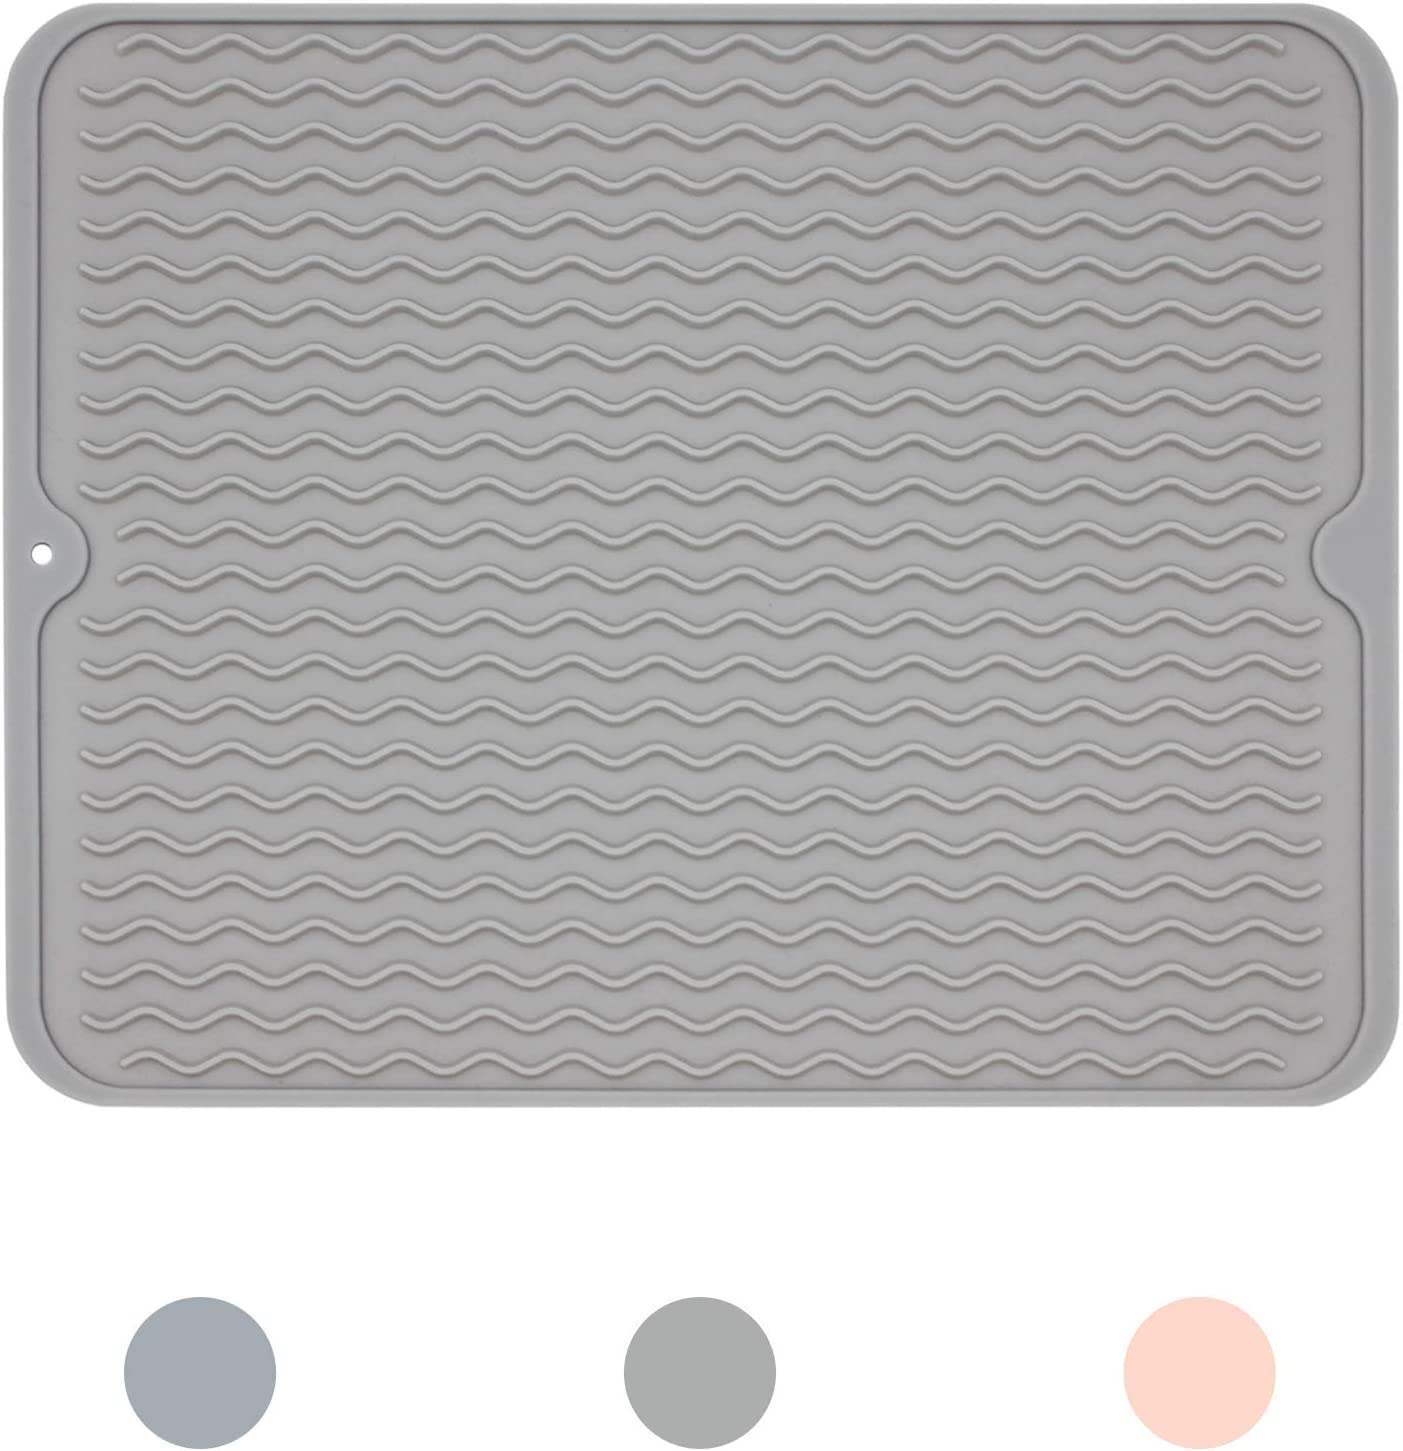 Ptlom Dog and Cat Placemat, Pet Food and Water Mat, Suitable for Large, Medium and Small Pets, Prevent Water and Food from Spilling, Silicone, Light Gray